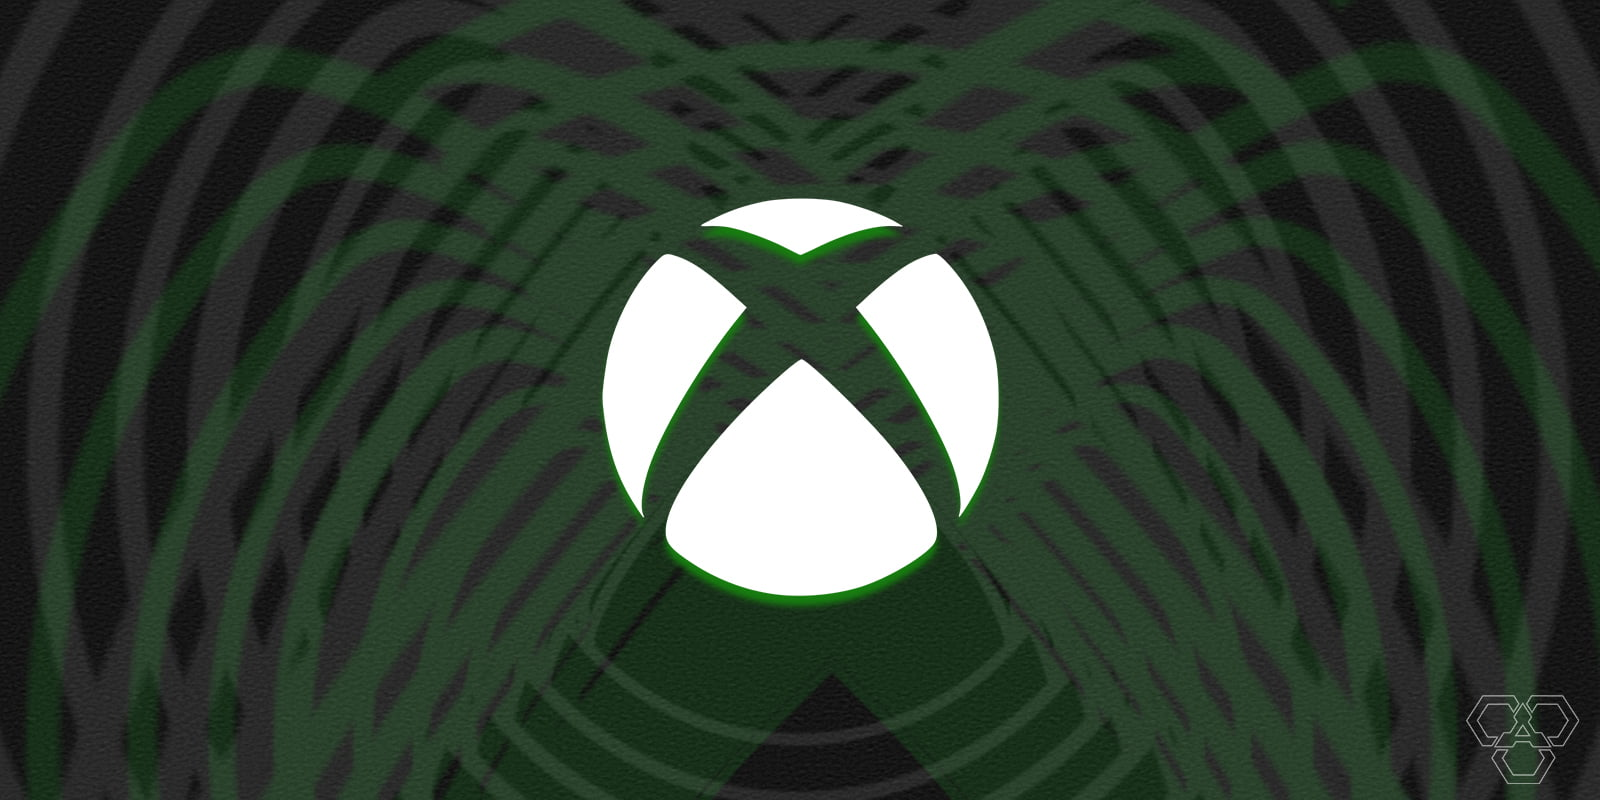 Microsoft to launch Cloud gaming service on Xbox consoles this year